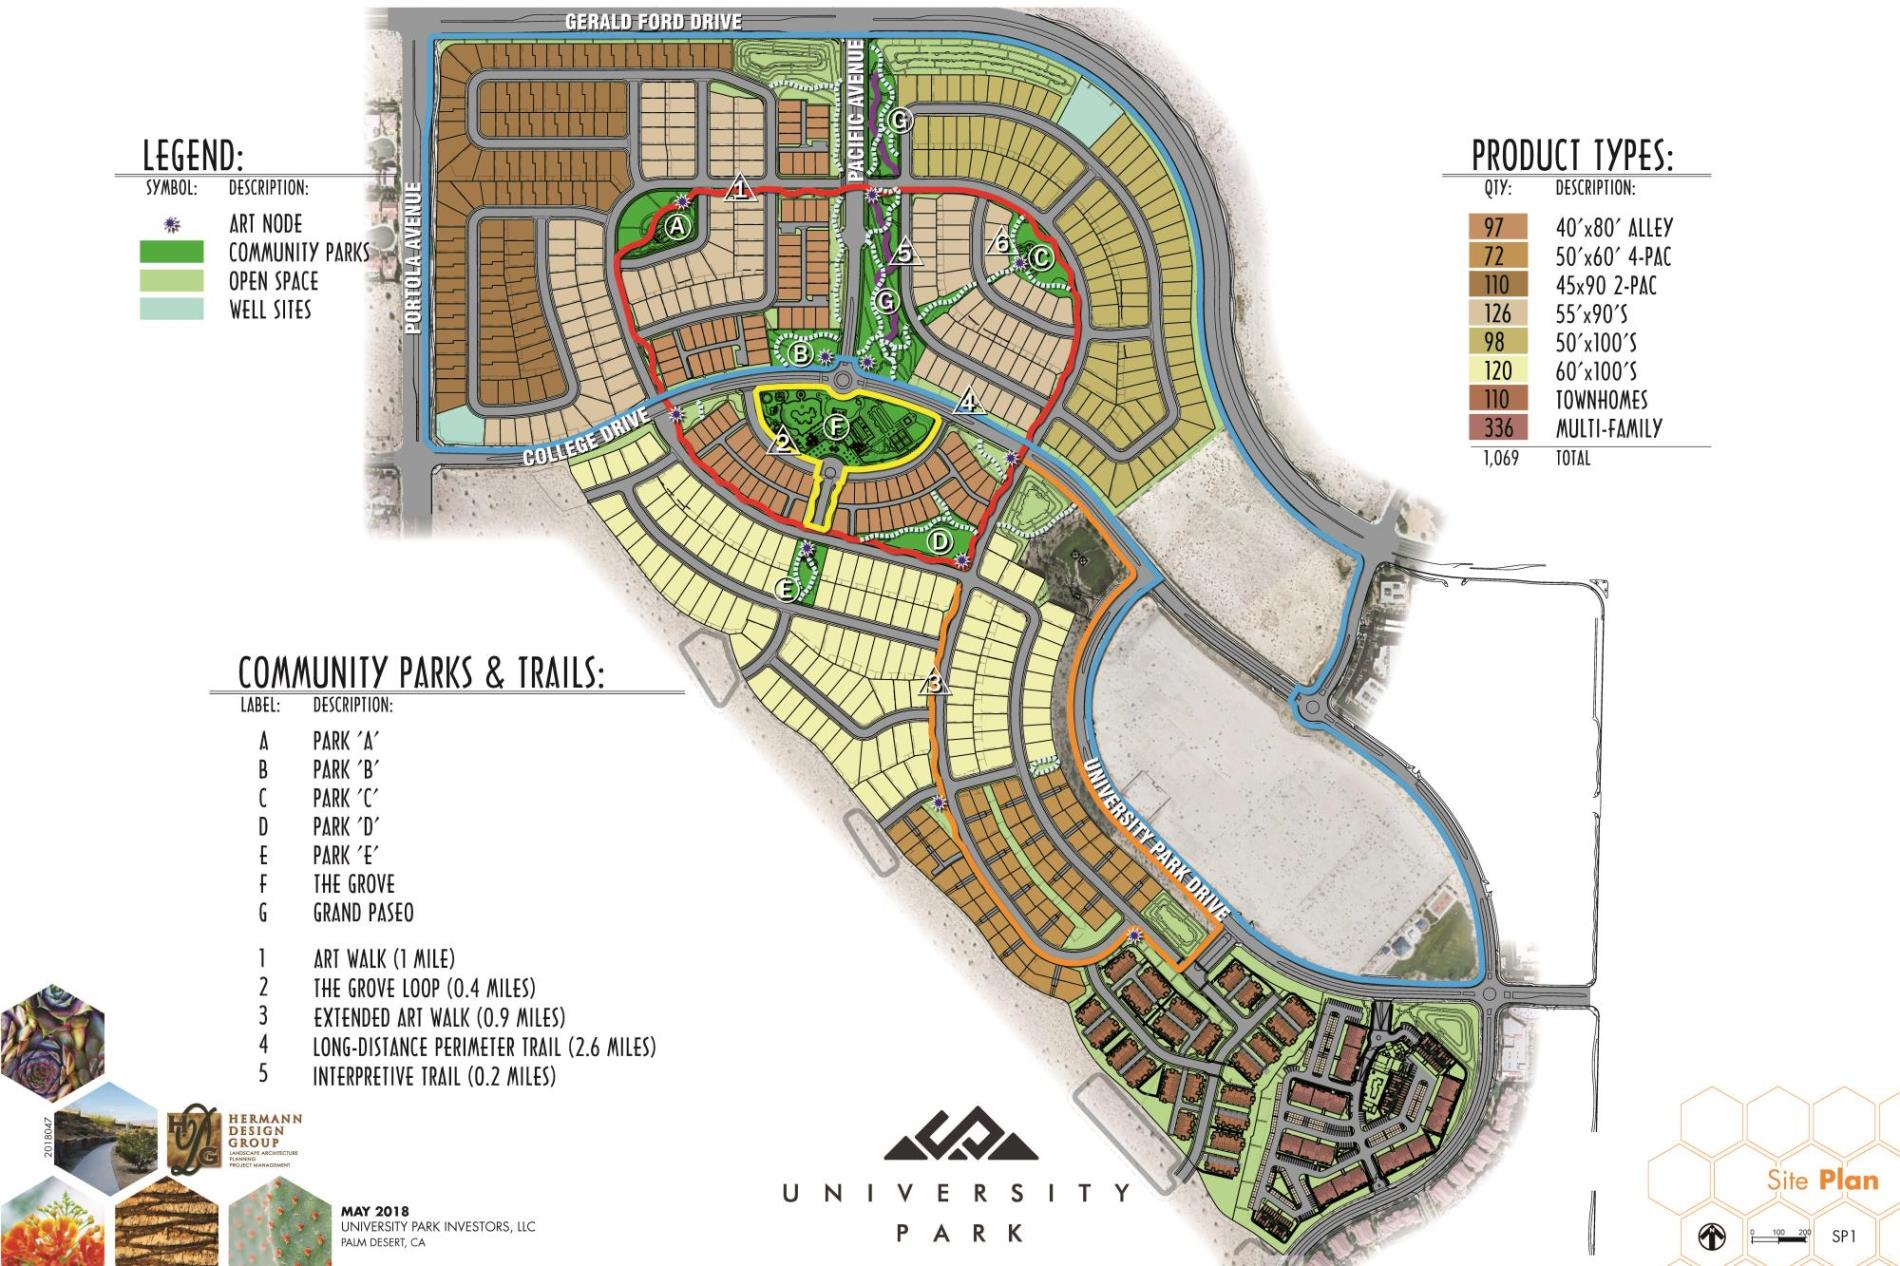 Univeristy Park Site Plan